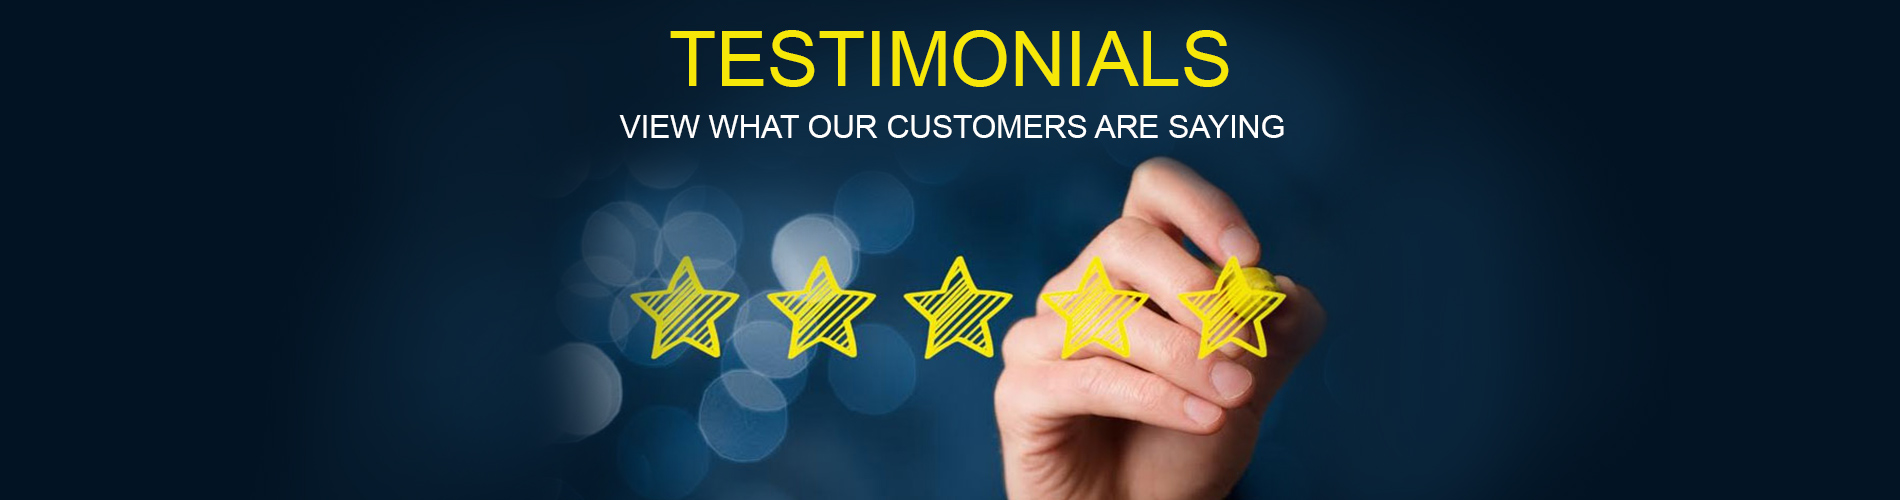 Read testimonials & reviews of what our customers say about us!